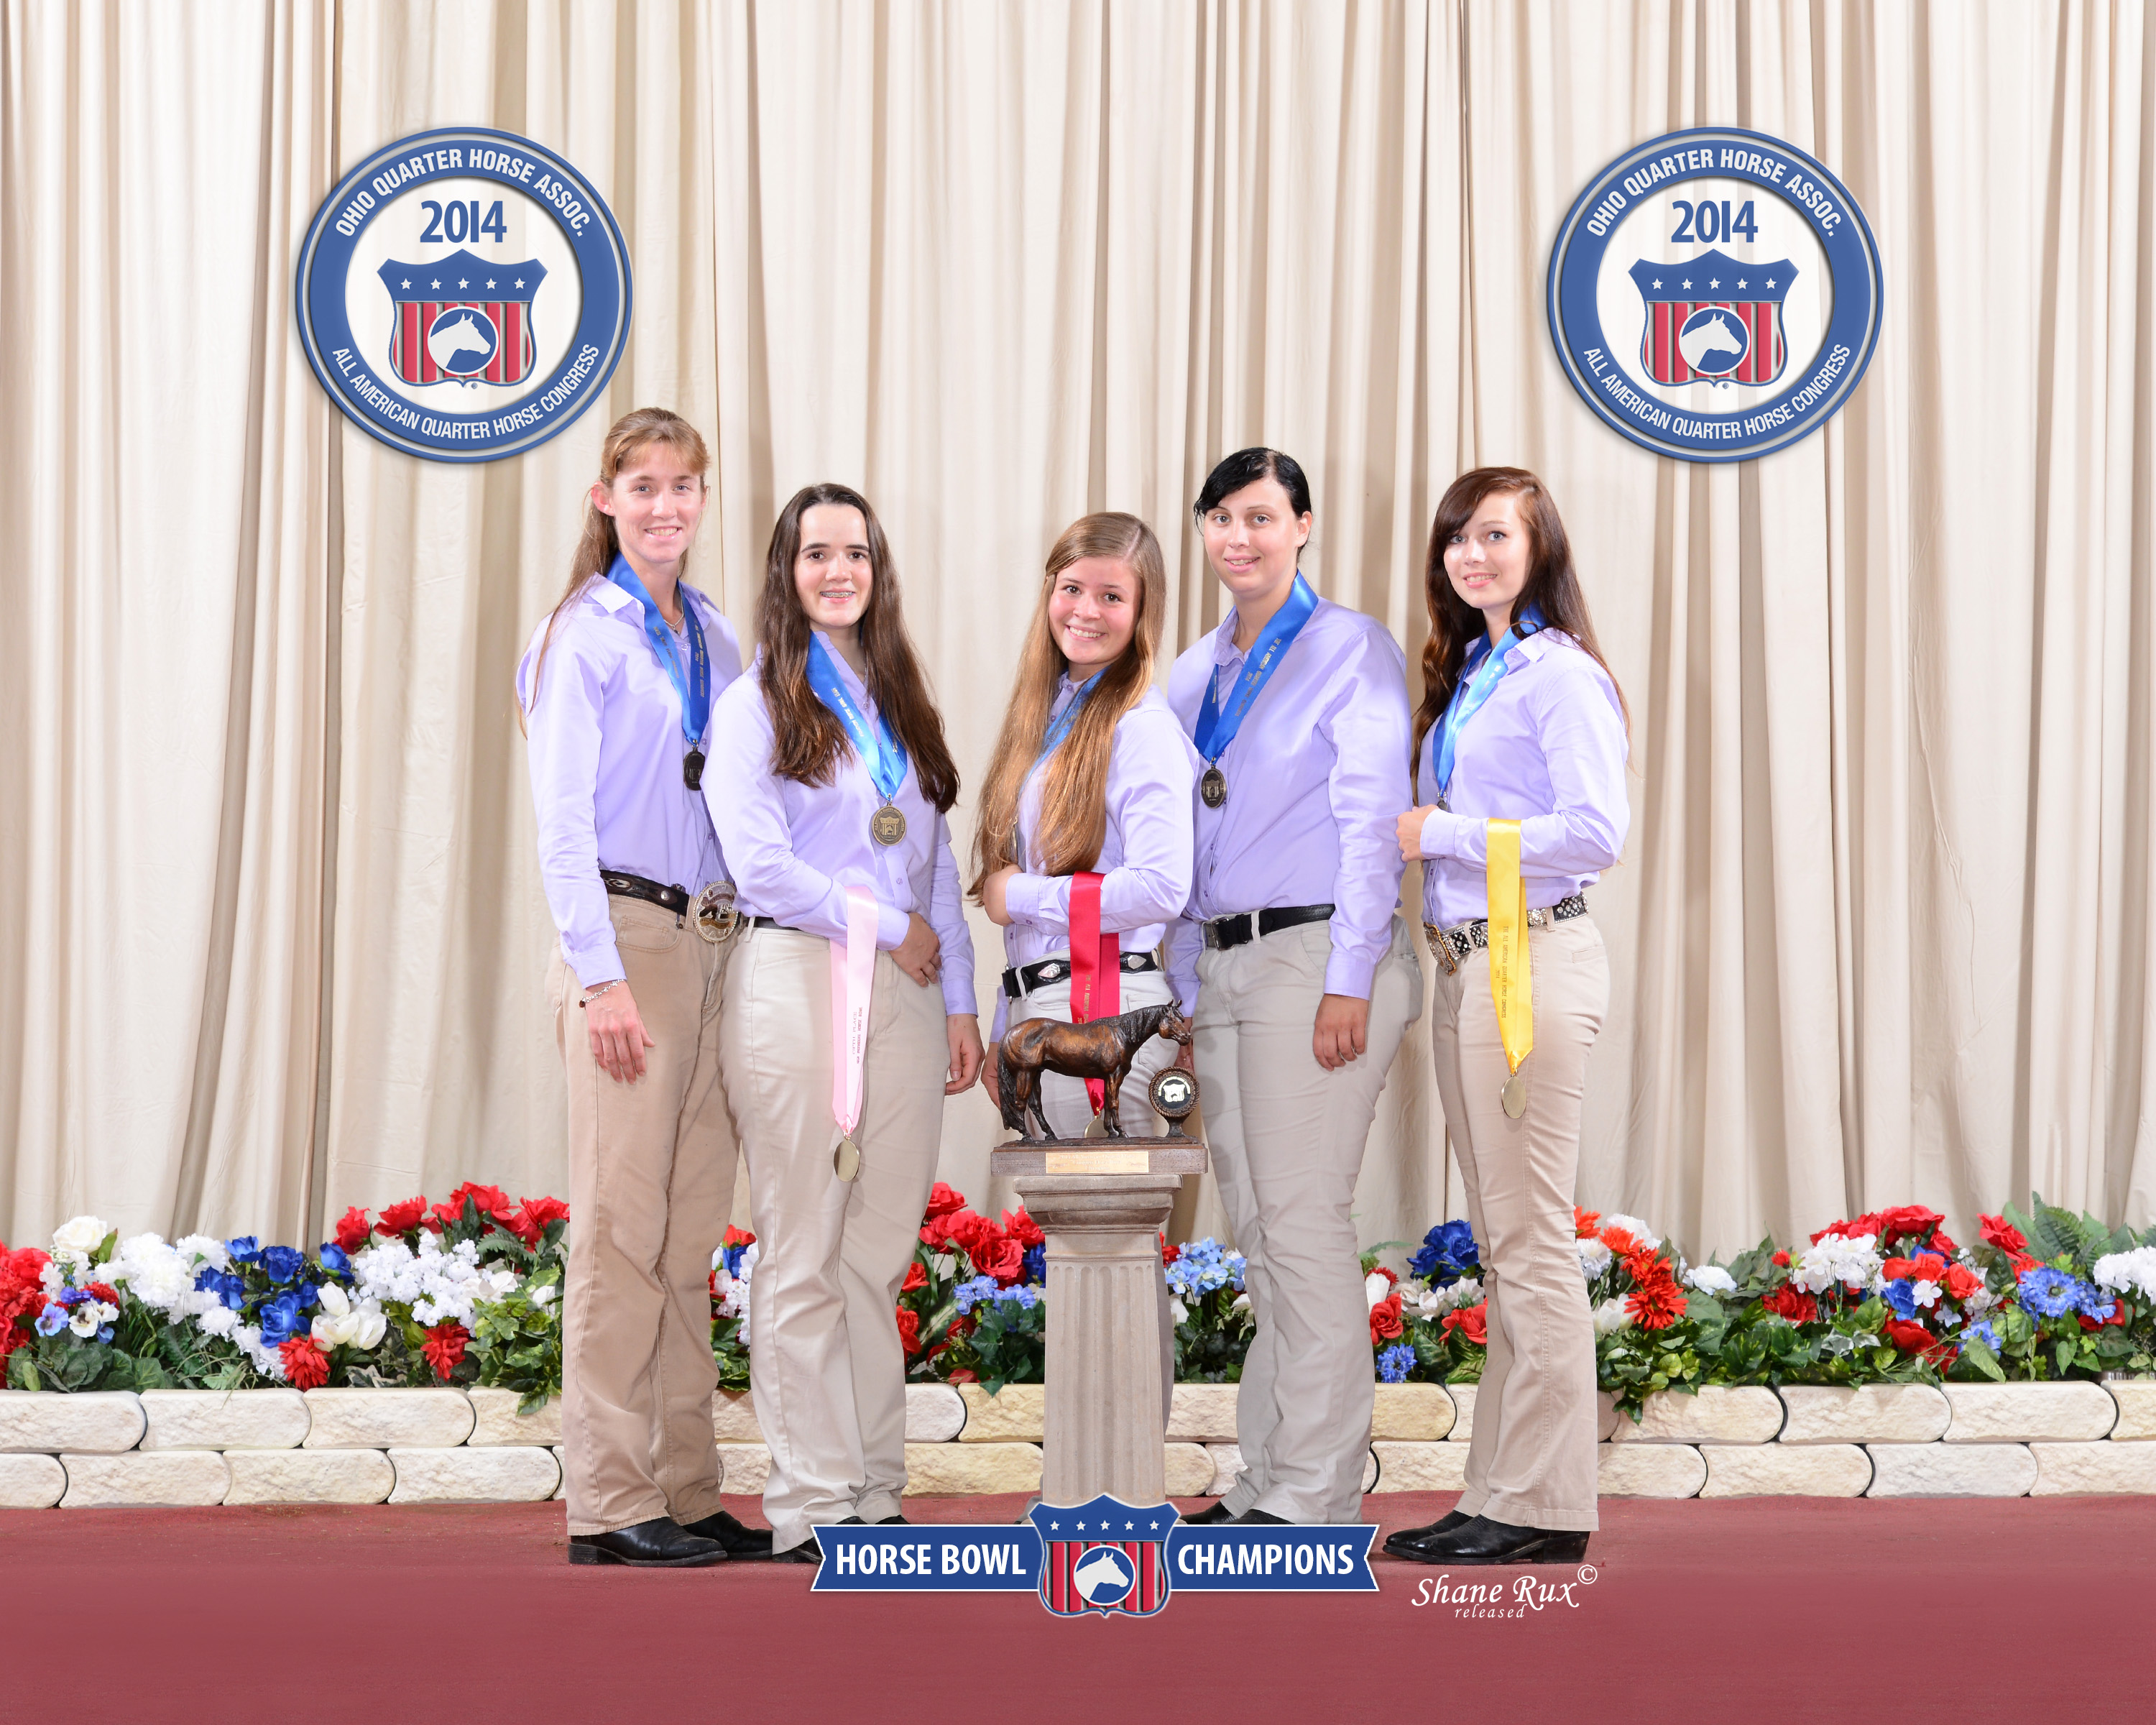 Congress Horsebowl Champions. L to R: Lindsay Riddell, Alexandria Knudson, Rachel Rezin, Tori Gwaltney and Hannah Sather.